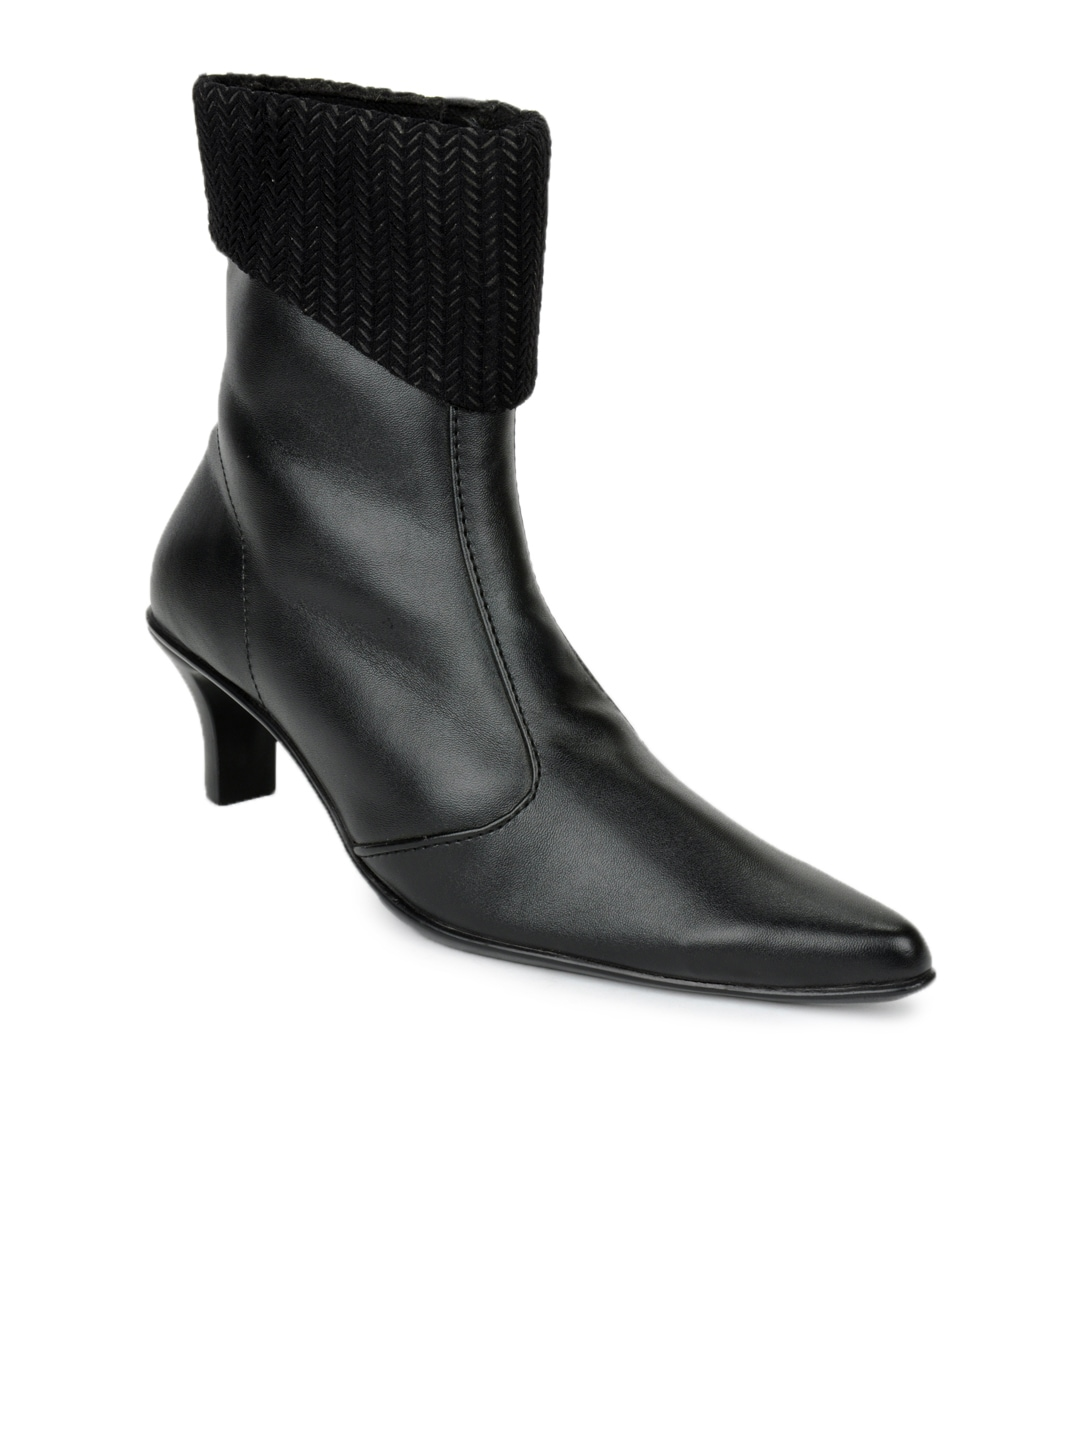 4926974698377 Inc 5 9039 Women Black Leather Boots - Best Price in India